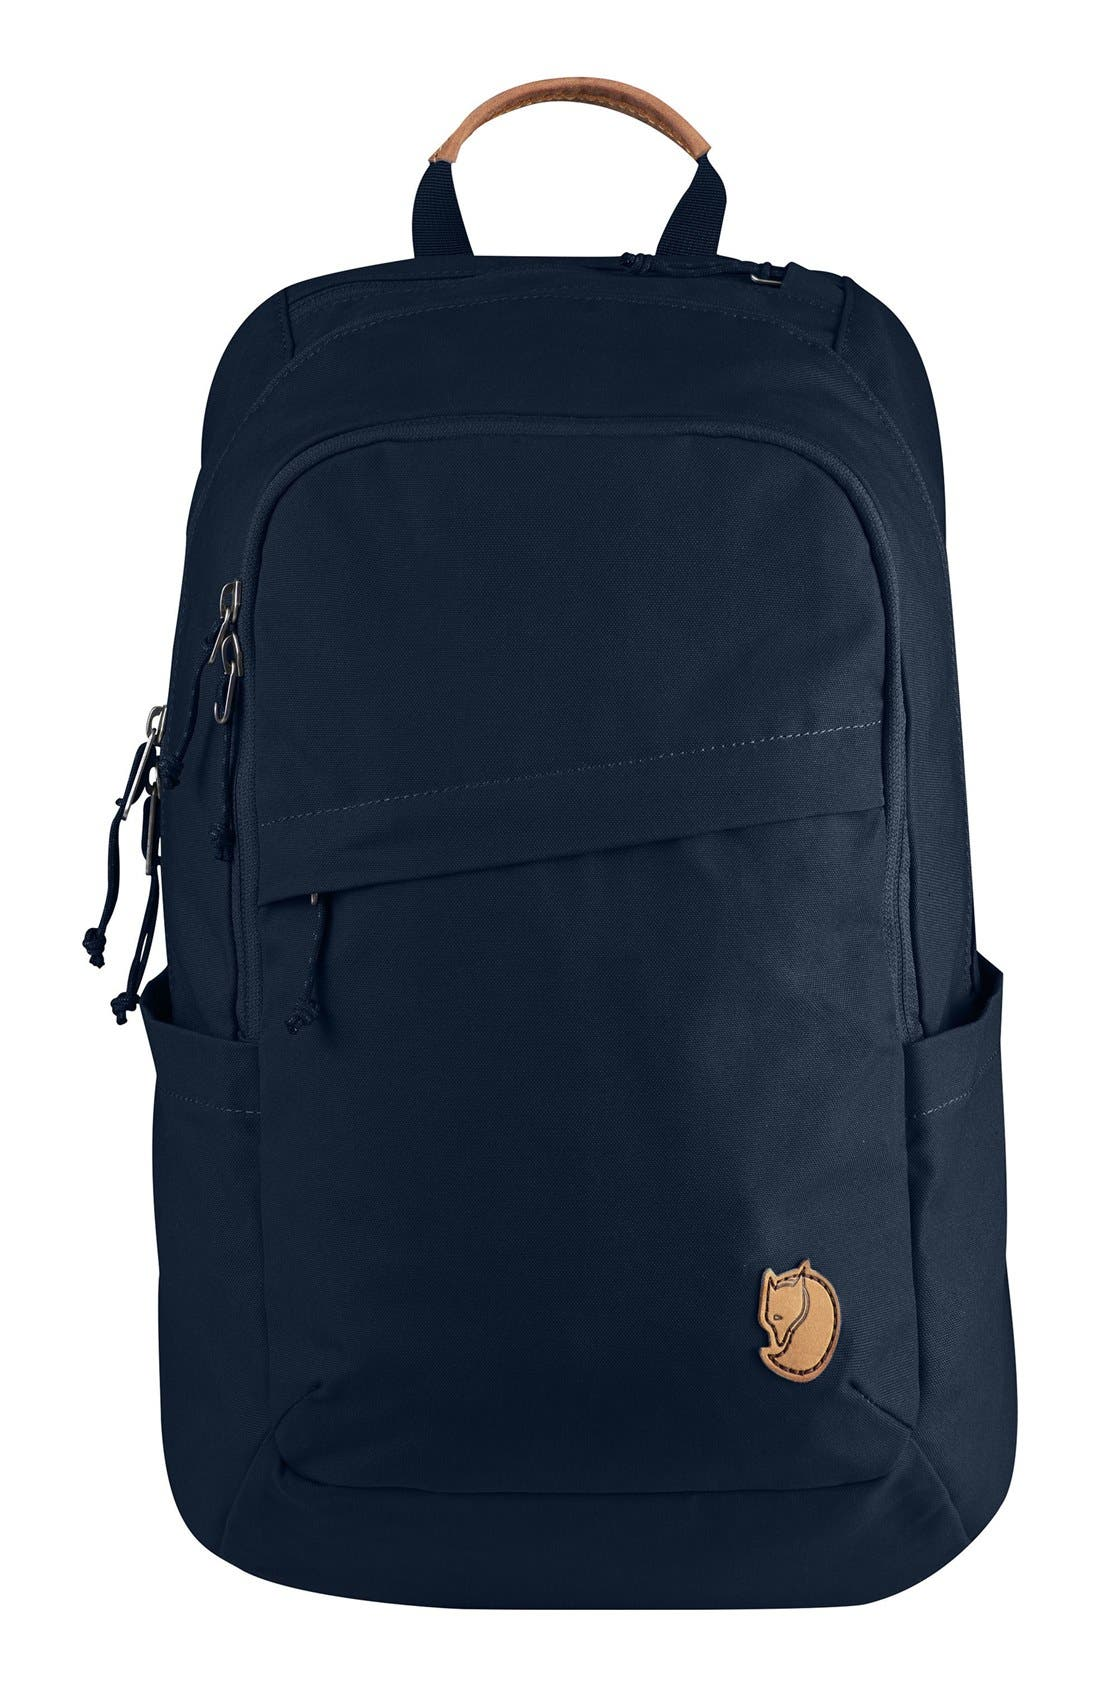 'Raven 20L' Backpack,                         Main,                         color, Navy